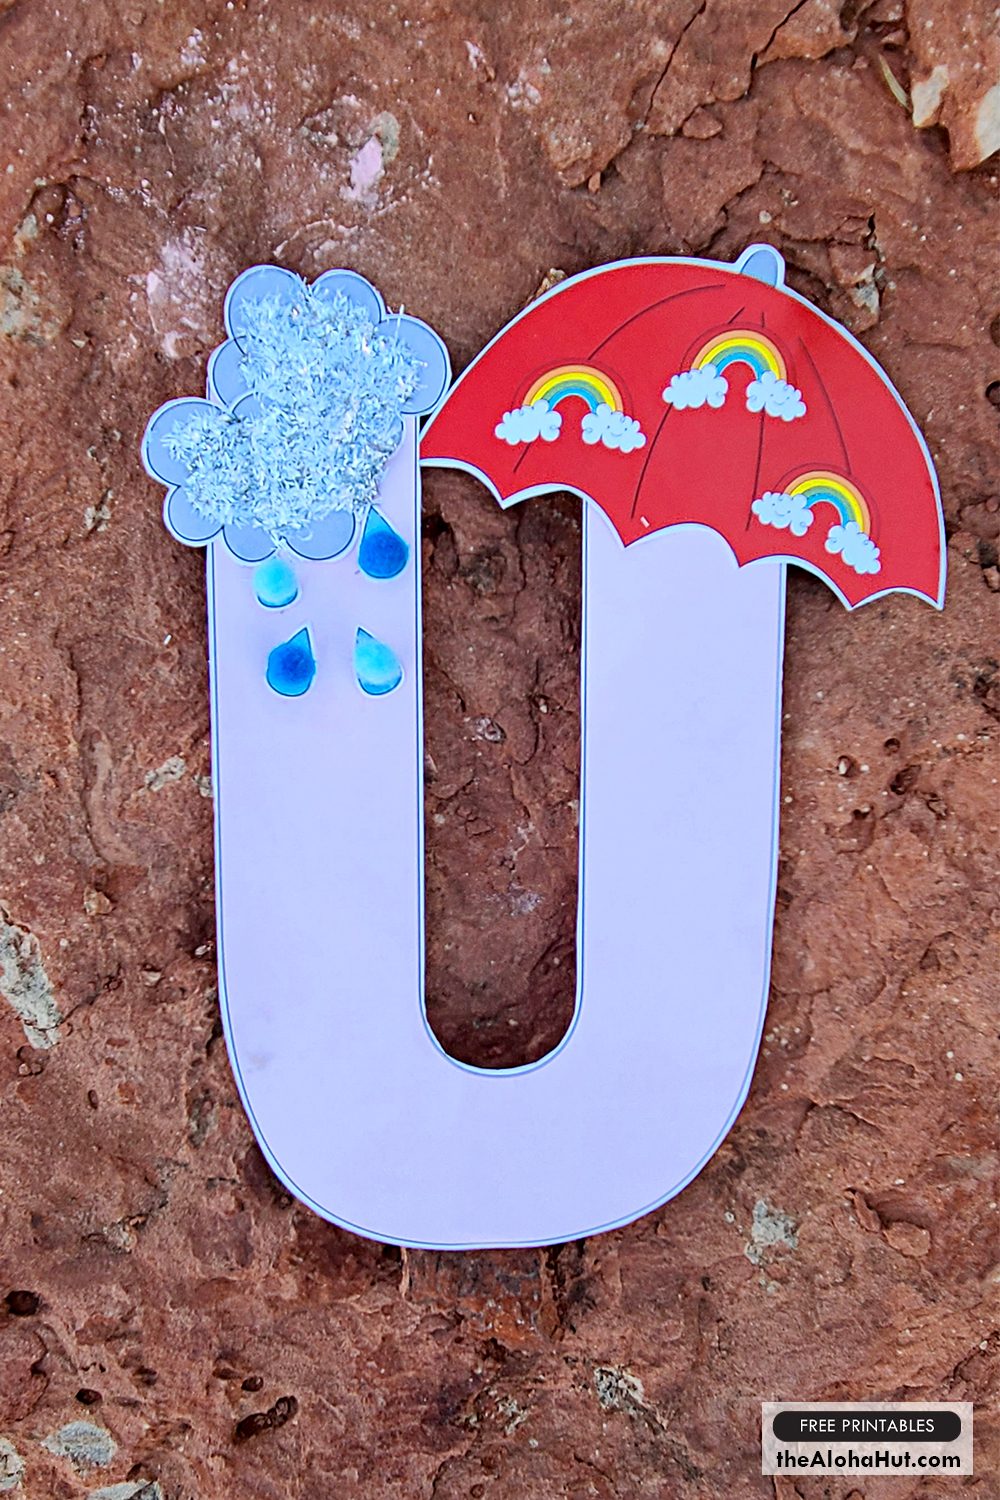 Alphabet Letter Crafts - Letter U - free printables 2 by the Aloha Hut